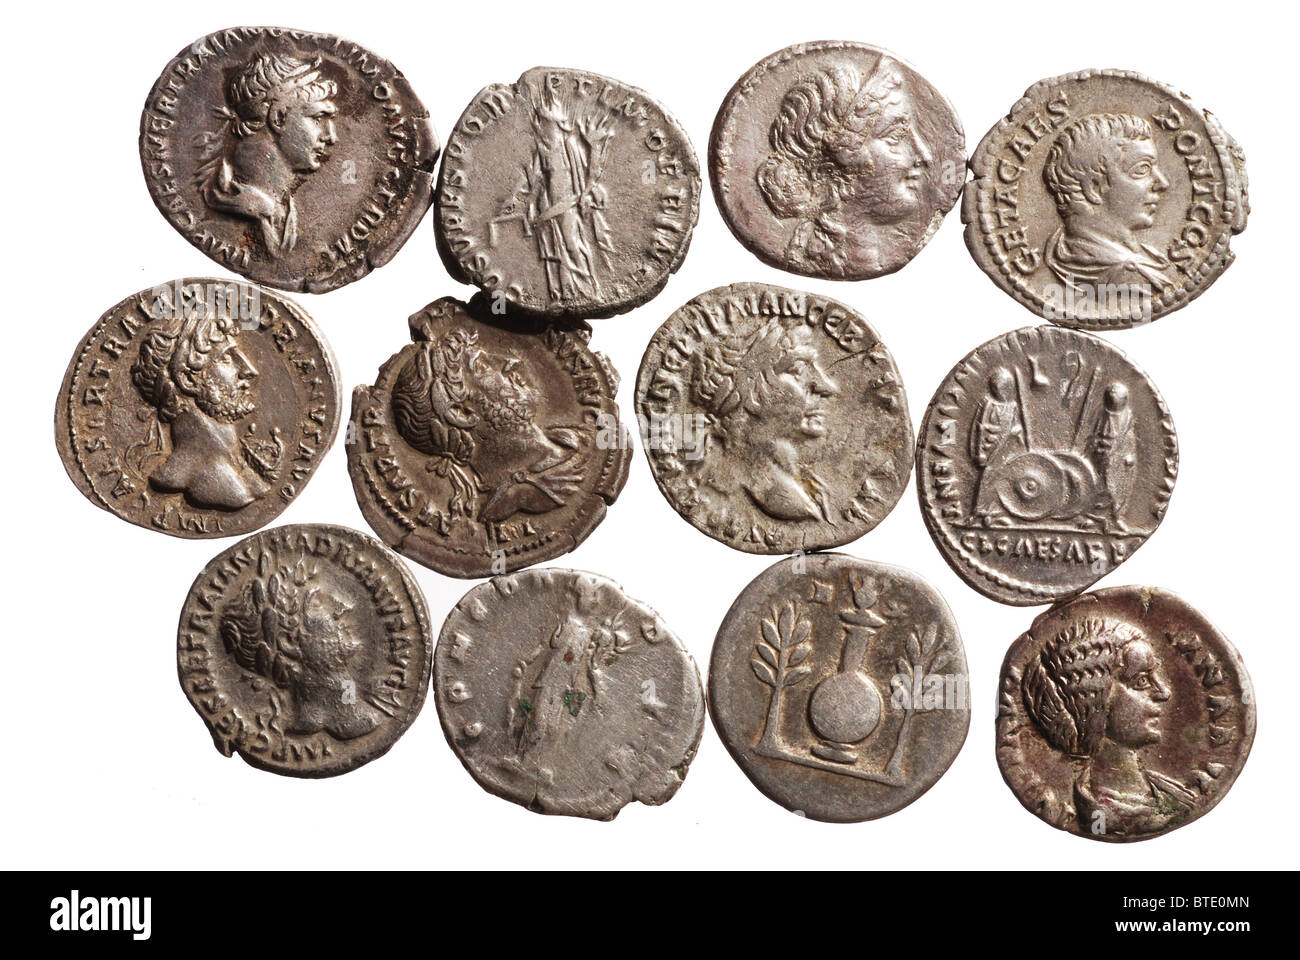 5402. Roman Imperial silver Denarii, ca. 1st -3rd cent AD, the standard coin of the Empire depicting different emperors - Stock Image